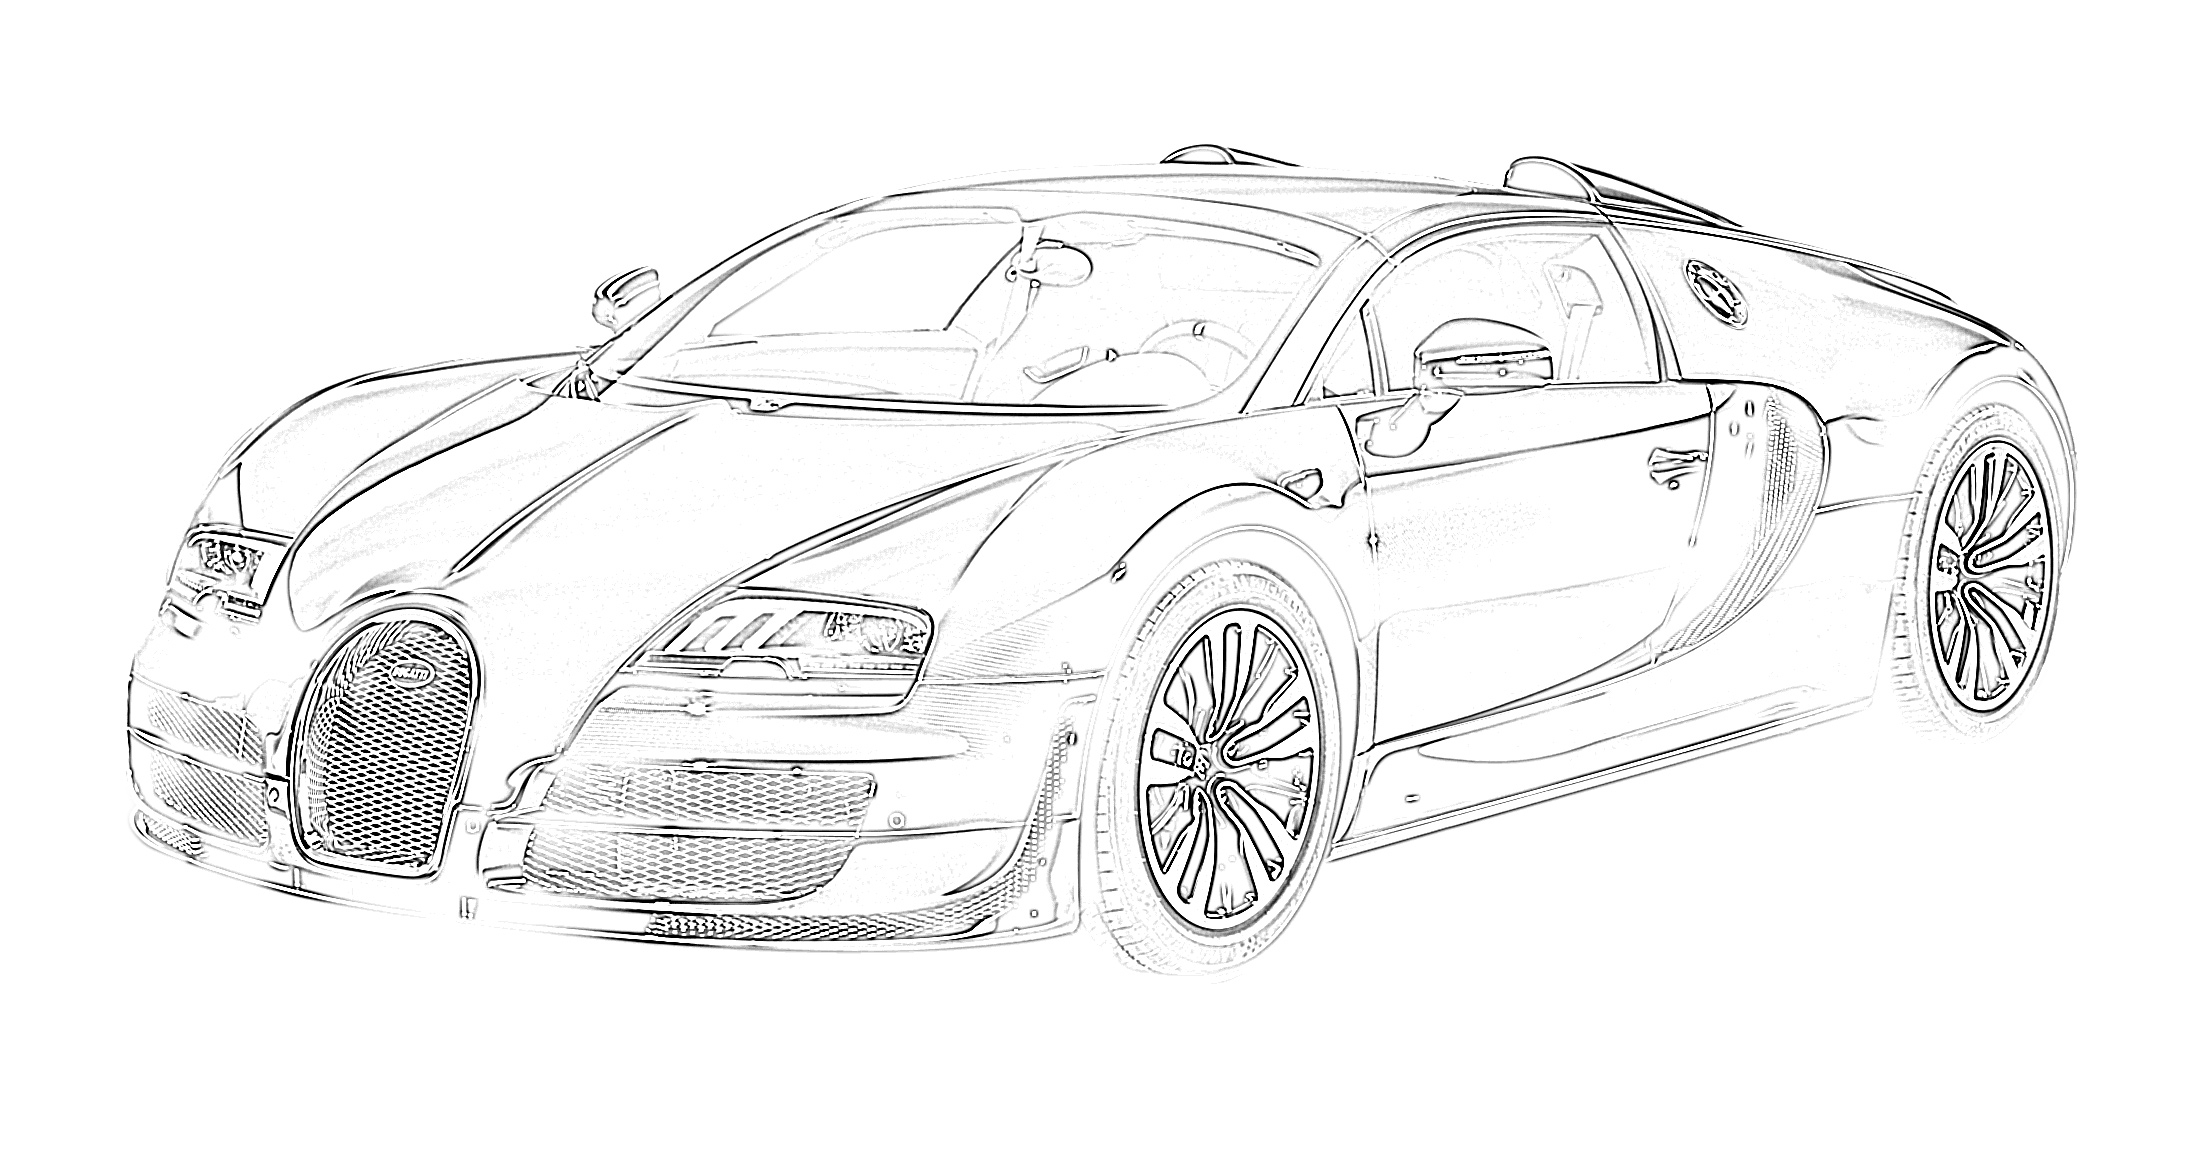 coloring pages of bugatti bugatti coloring pages coloring pages to download and print bugatti coloring pages of